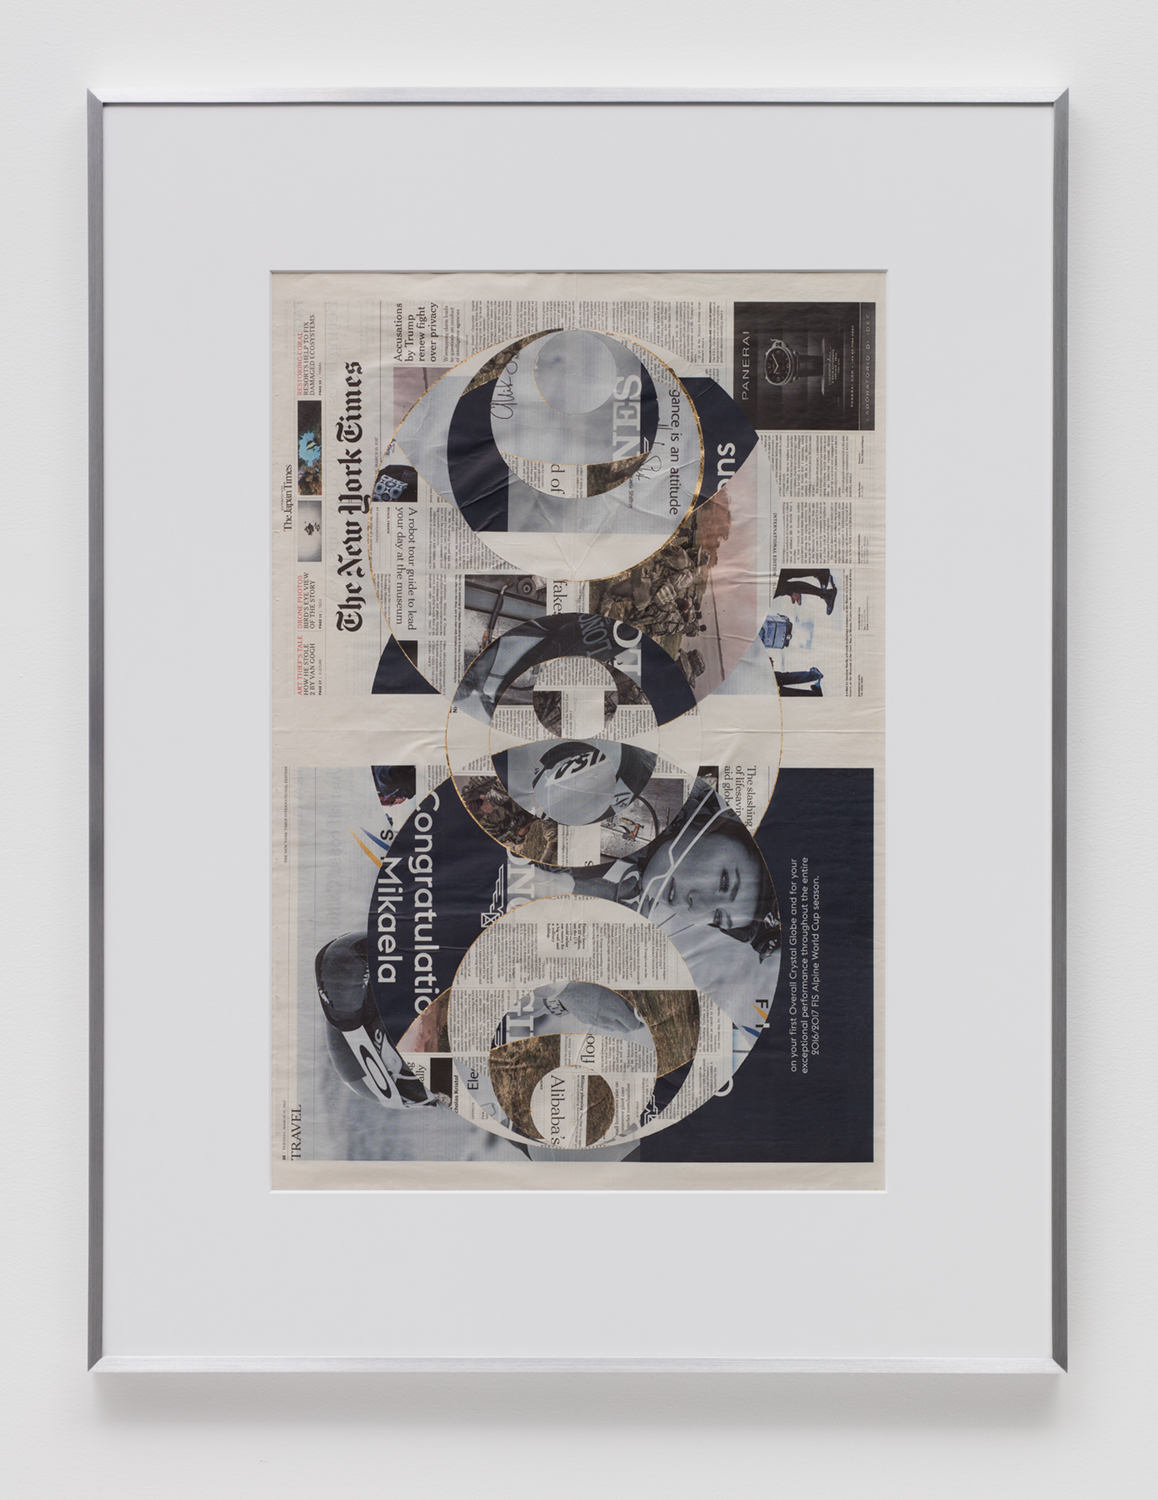 Blind Collage (Four 180º Rotations, The New York Times International Edition, Distributed with The Japan Times, Tuesday, March 21, 2017)    2017   Newspaper, tape, and 22 karat gold leaf  43 5/8 x 33 1/8 inches   Blind Collages, 2017–